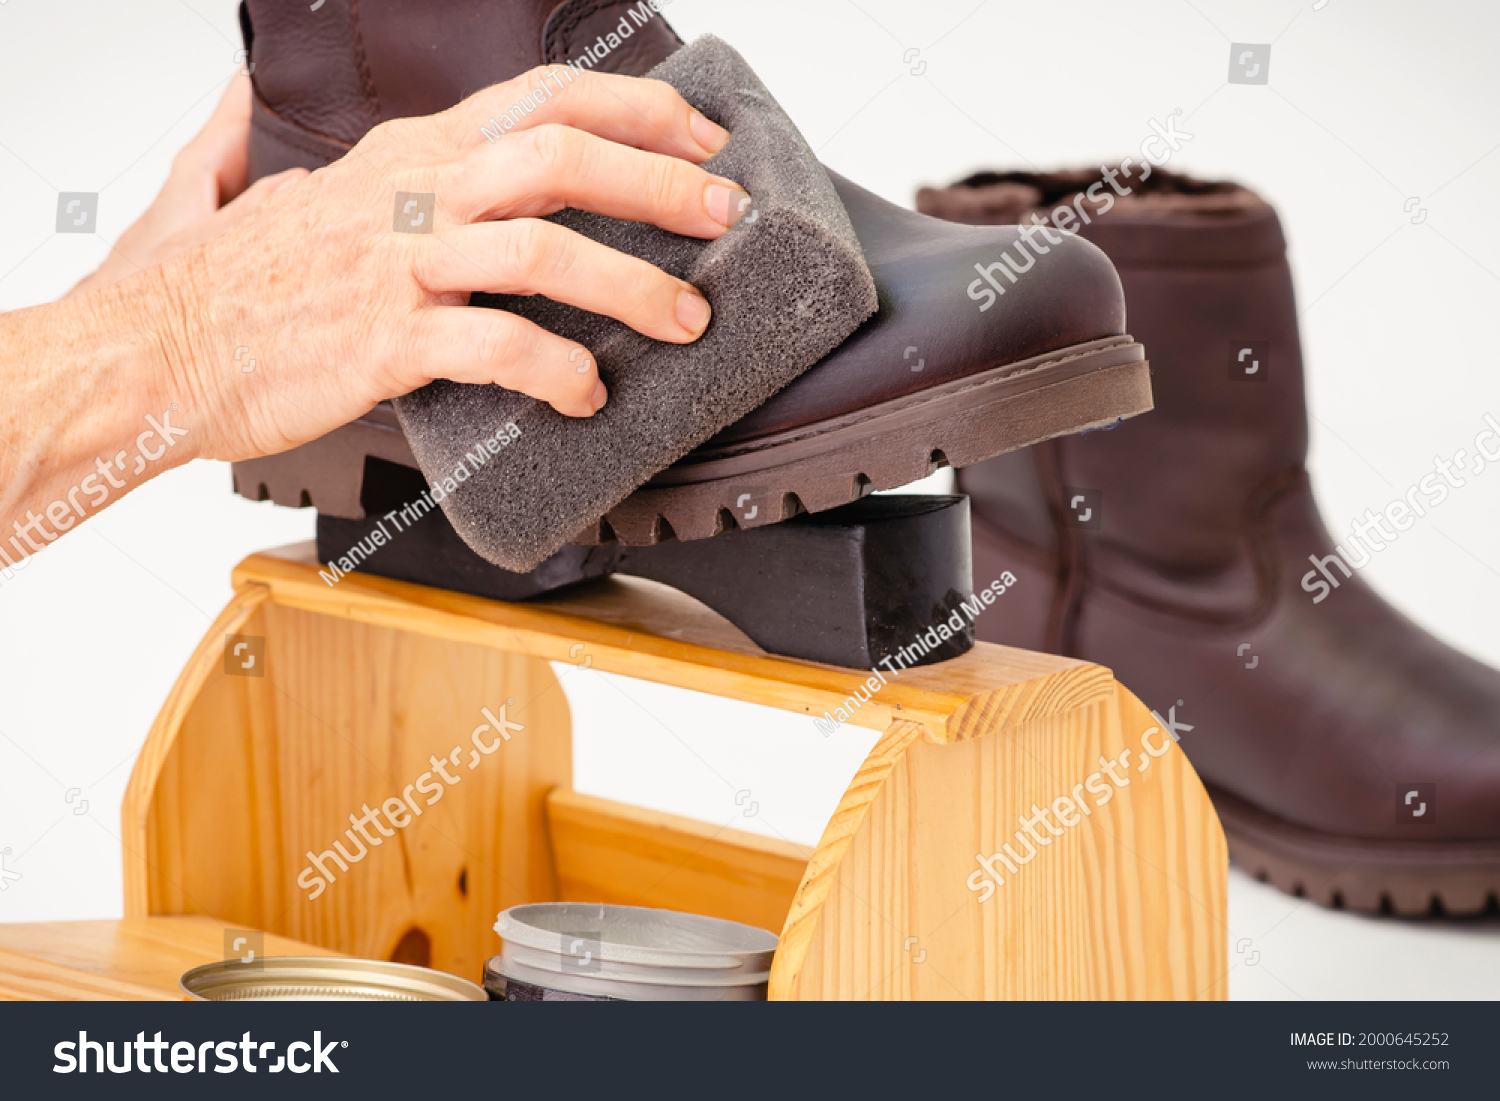 stock-photo-hands-cleaning-and-oiling-le